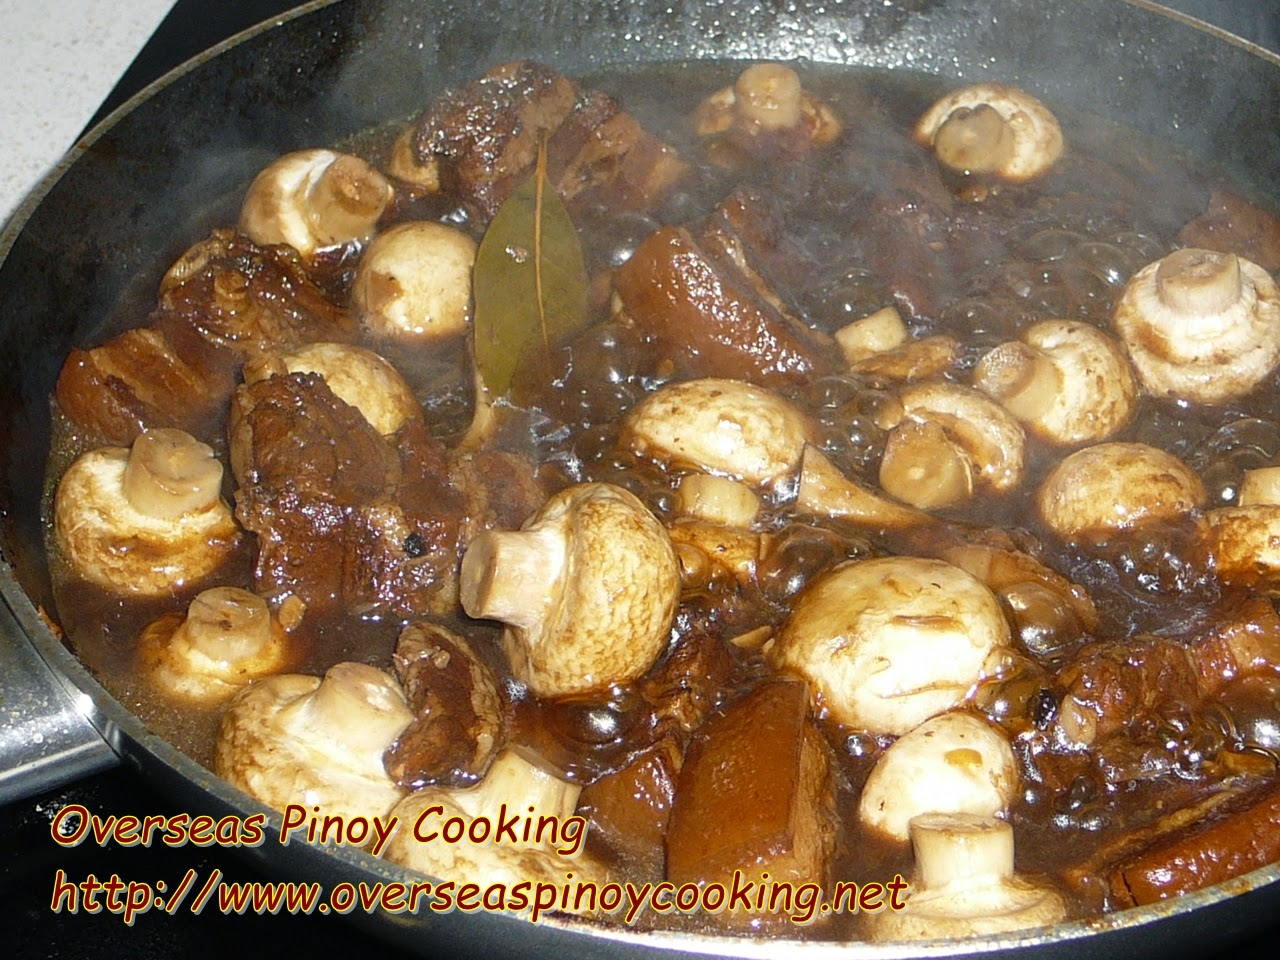 Pork and Mushroom Adobo - Cooking Procedure